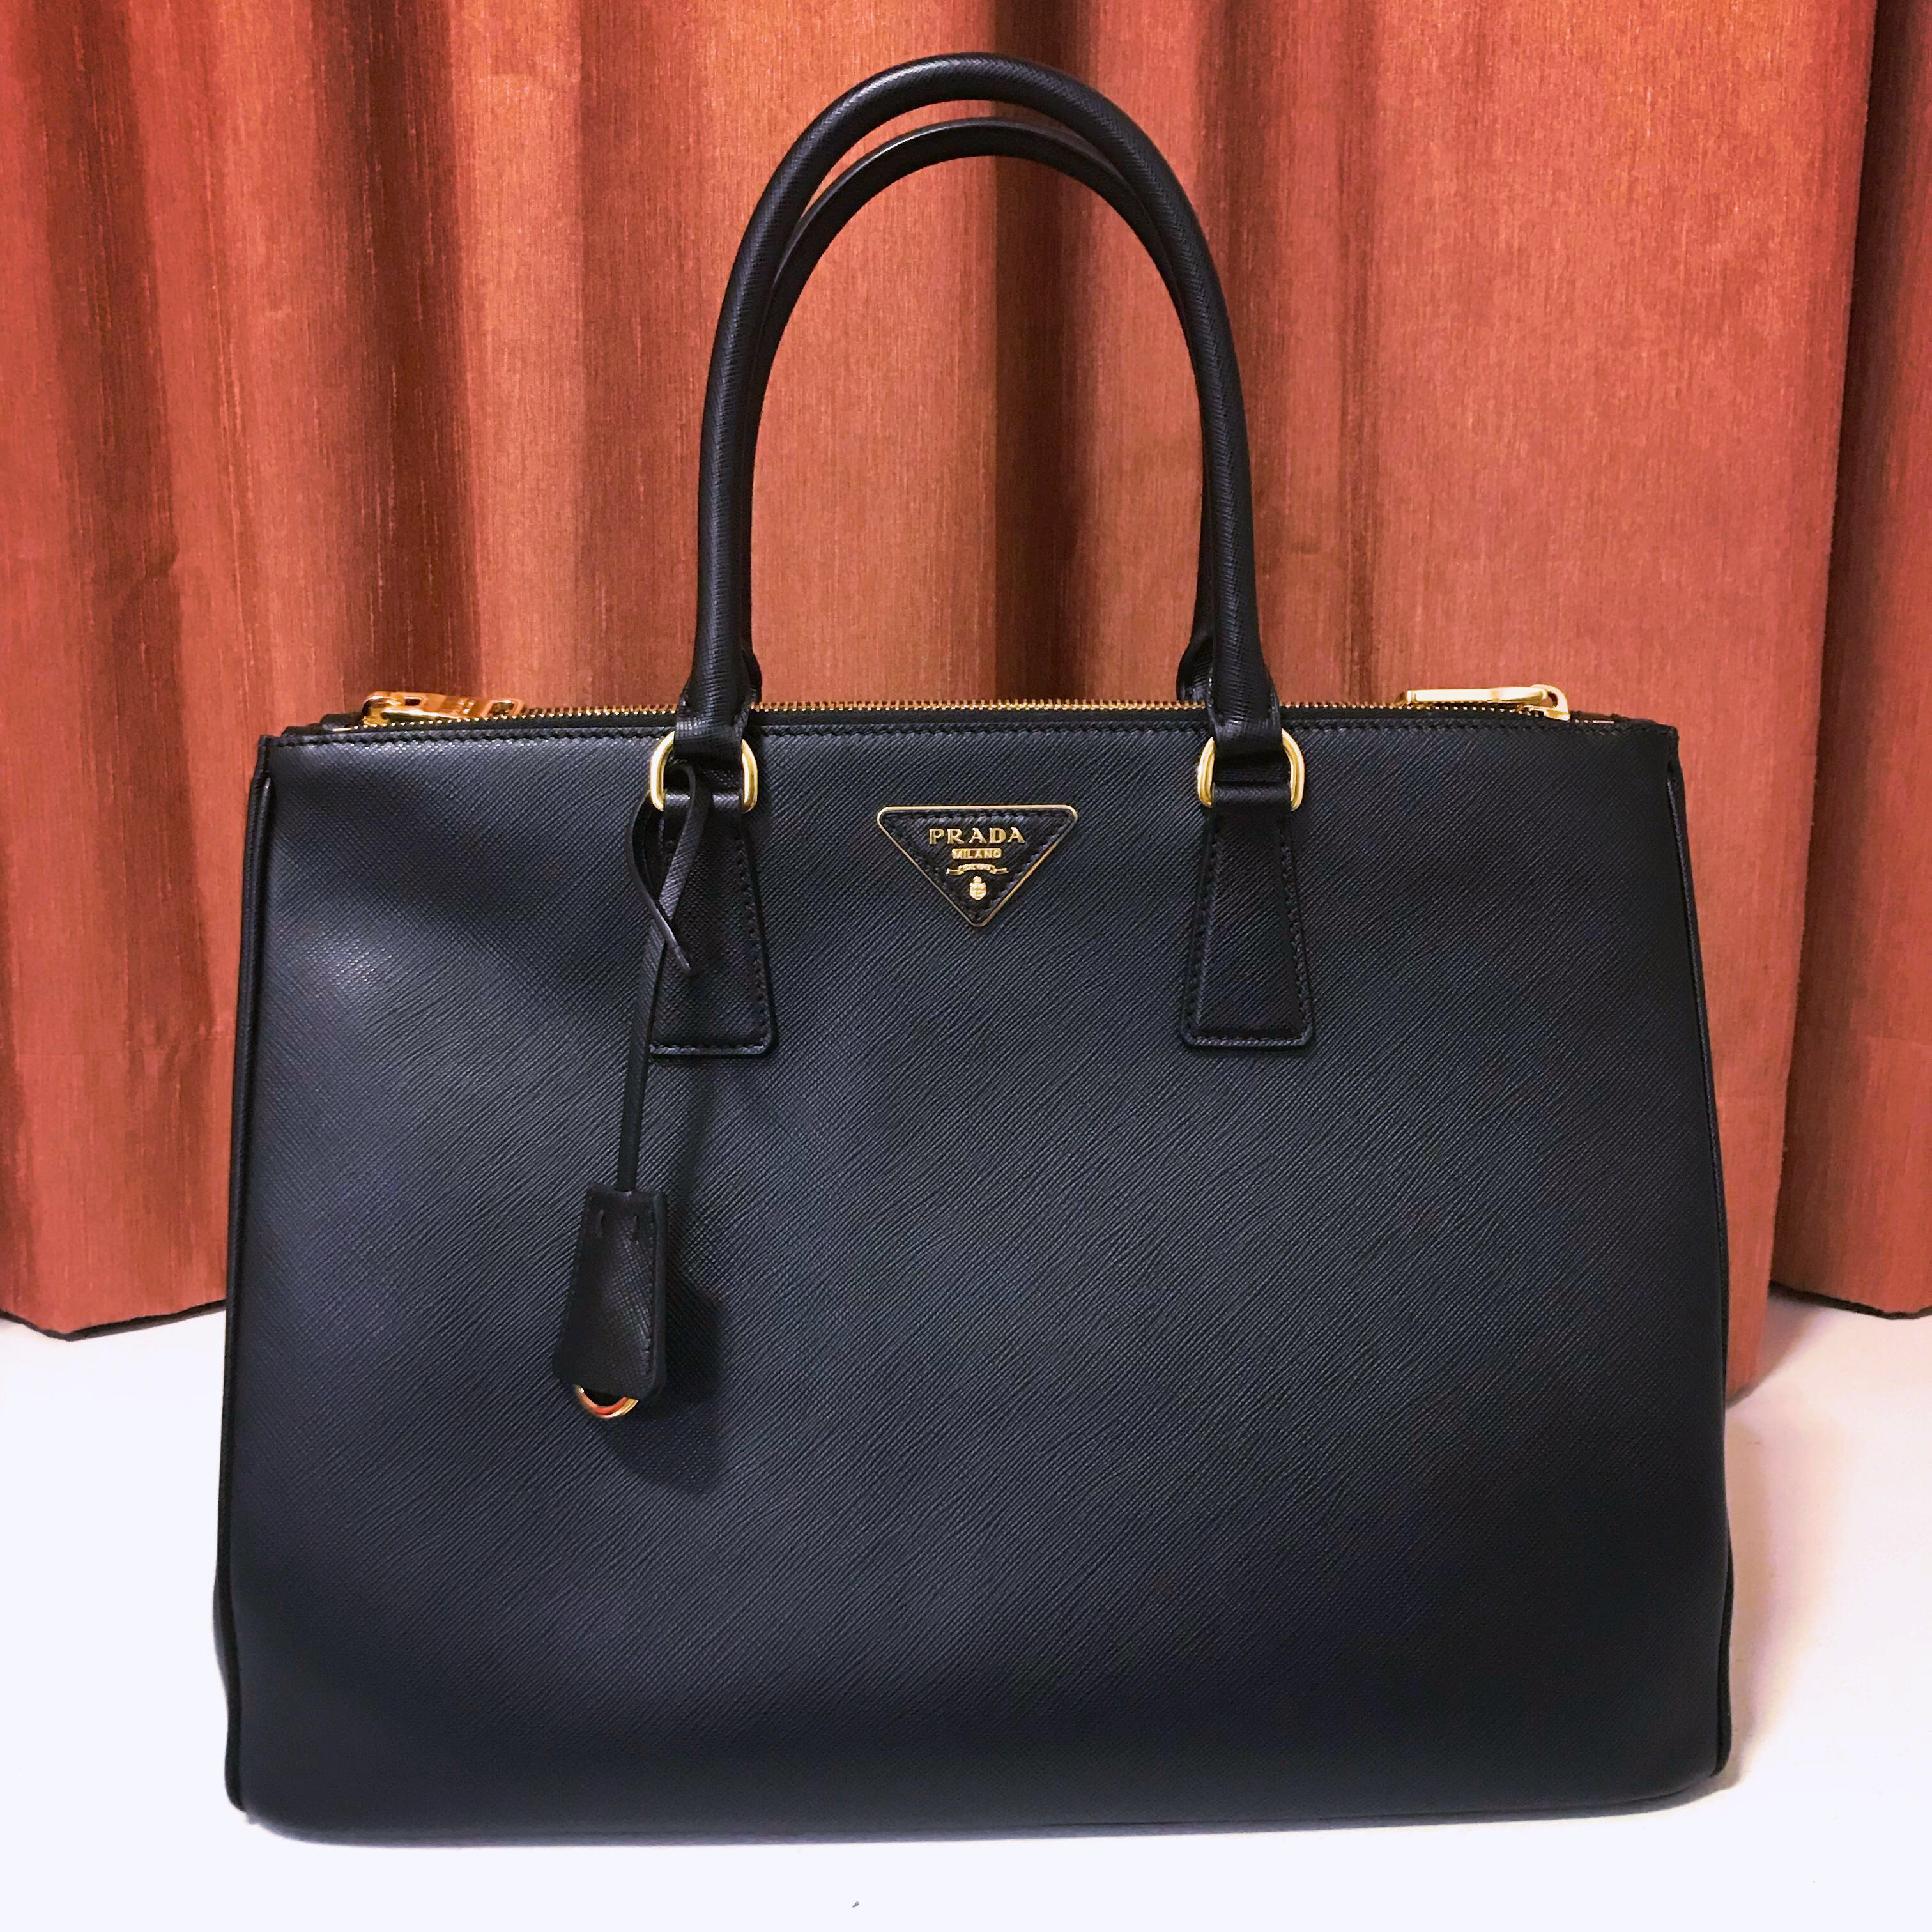 8c0567b835fcb8 Prada Saffiano Lux Nero Borsa A Mano Handbag, Luxury, Bags & Wallets,  Handbags on Carousell